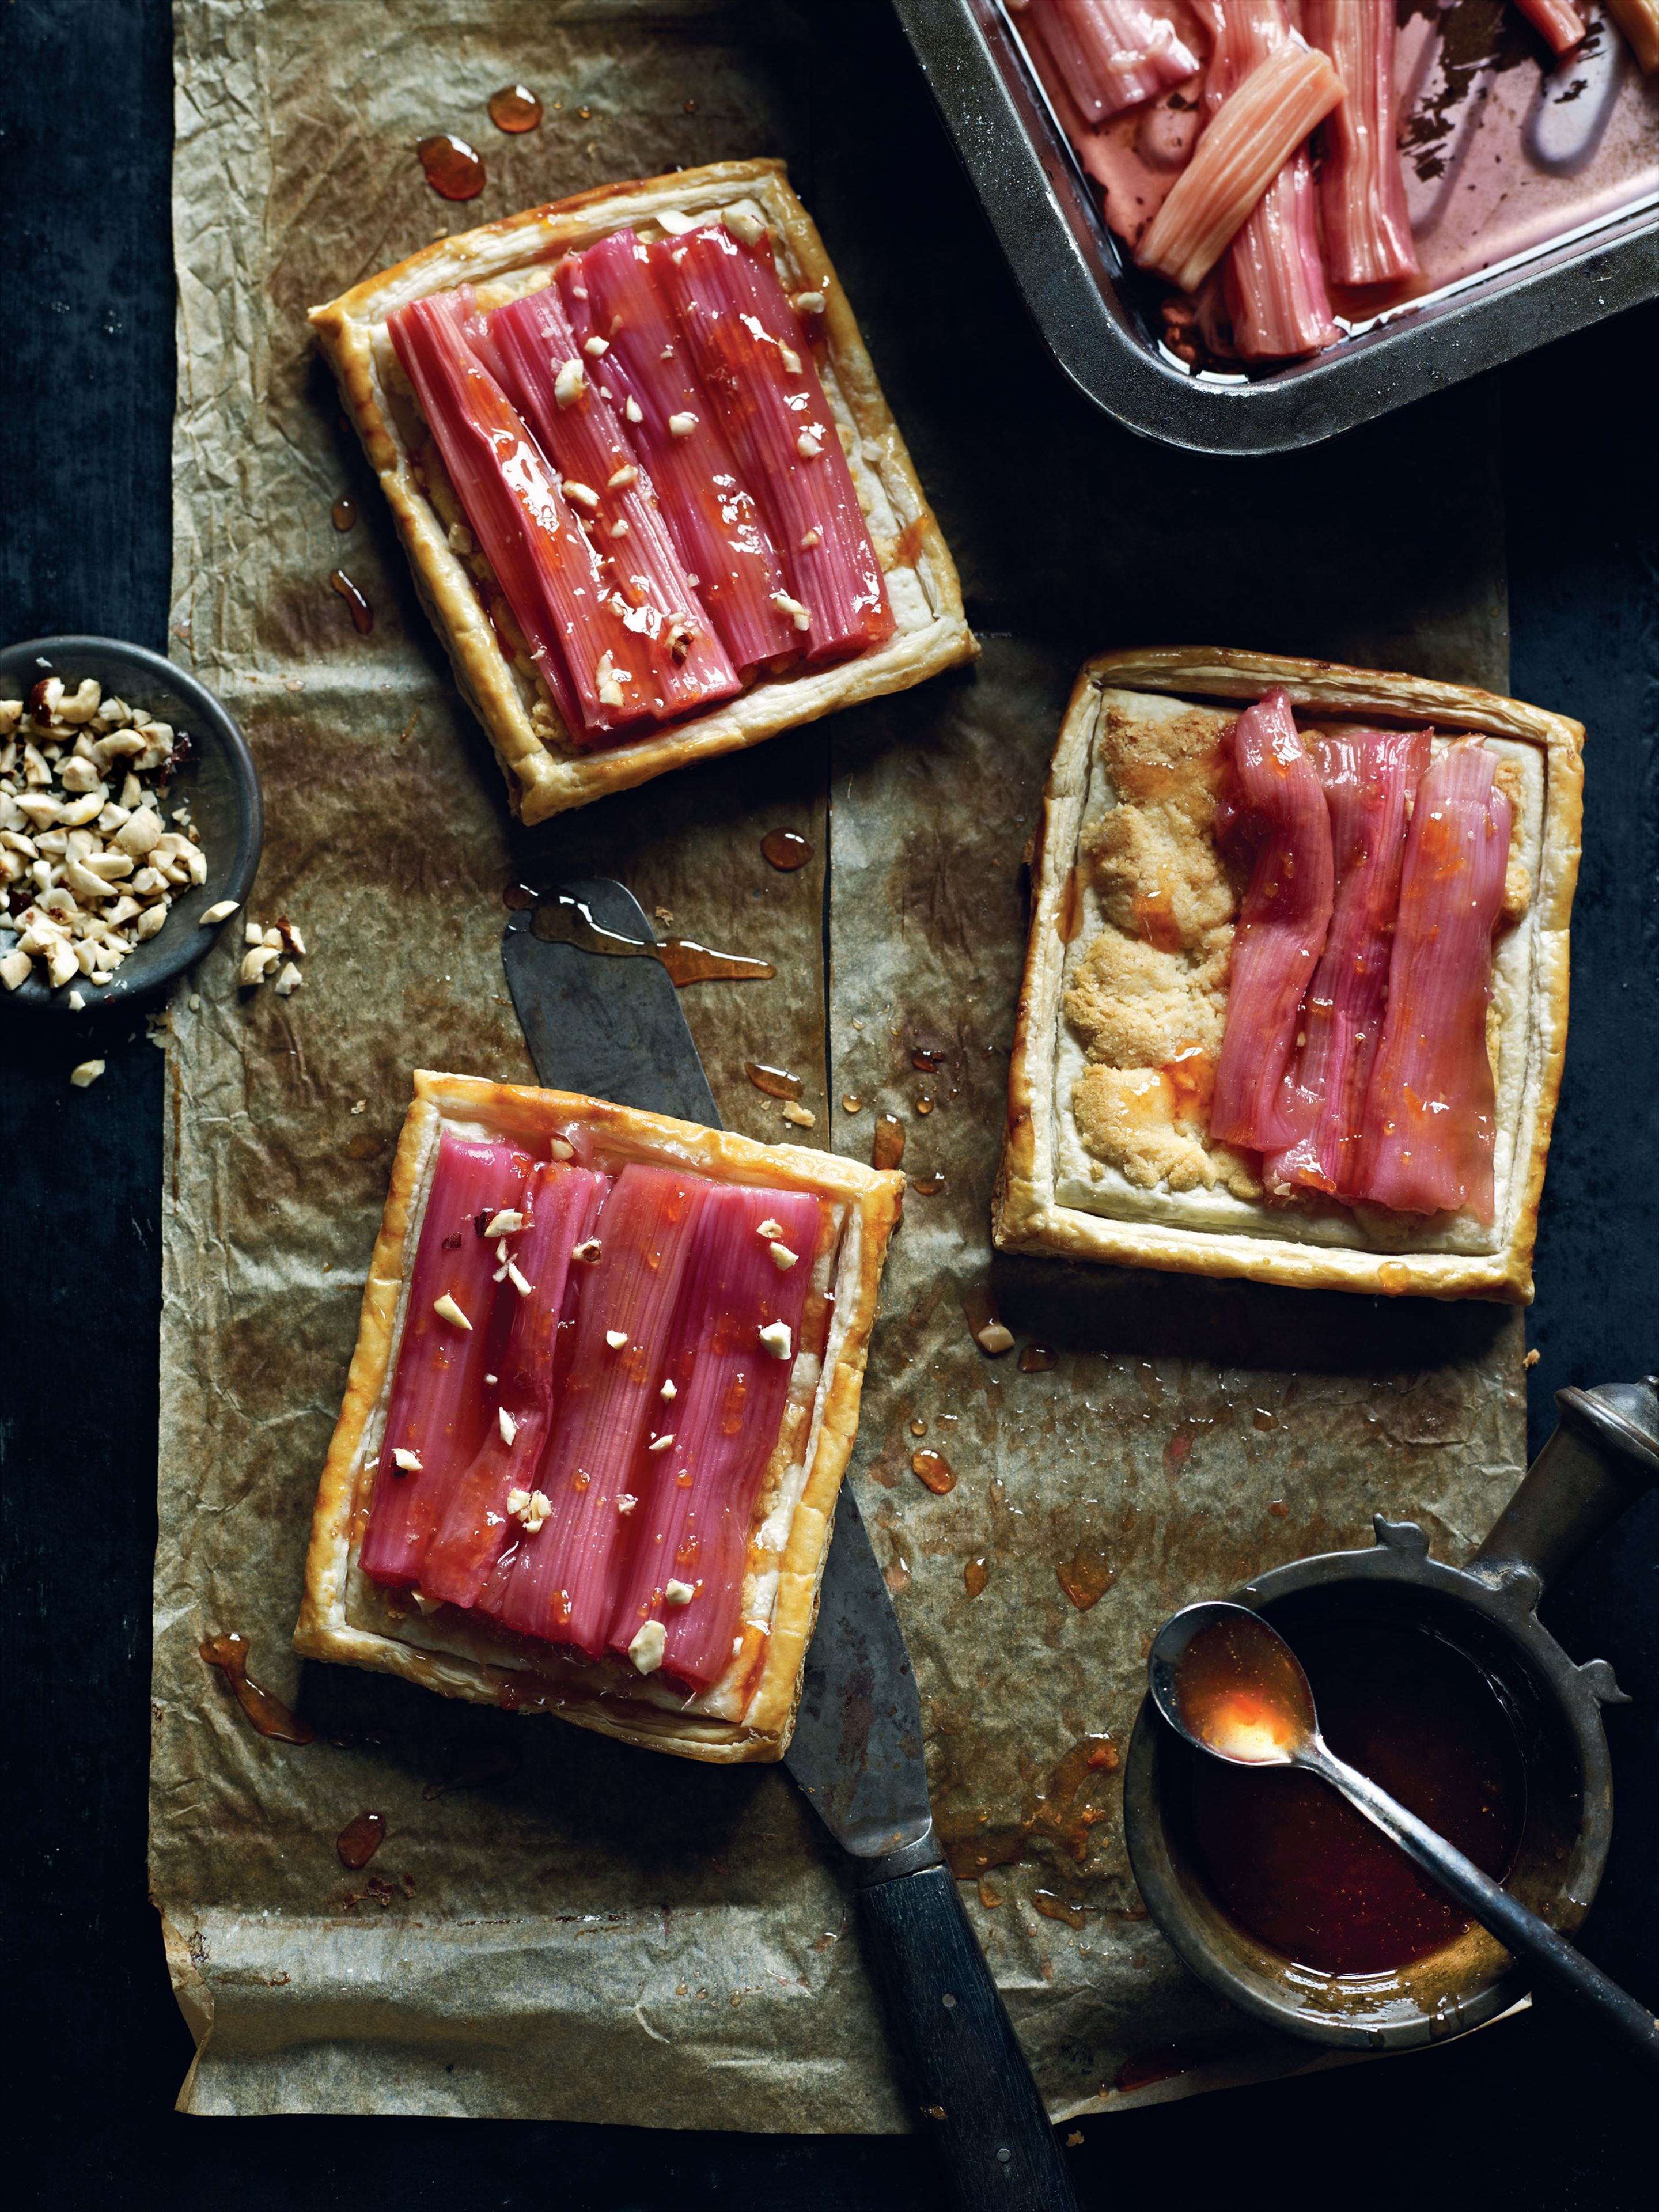 Roasted rhubarb and almond tartlets